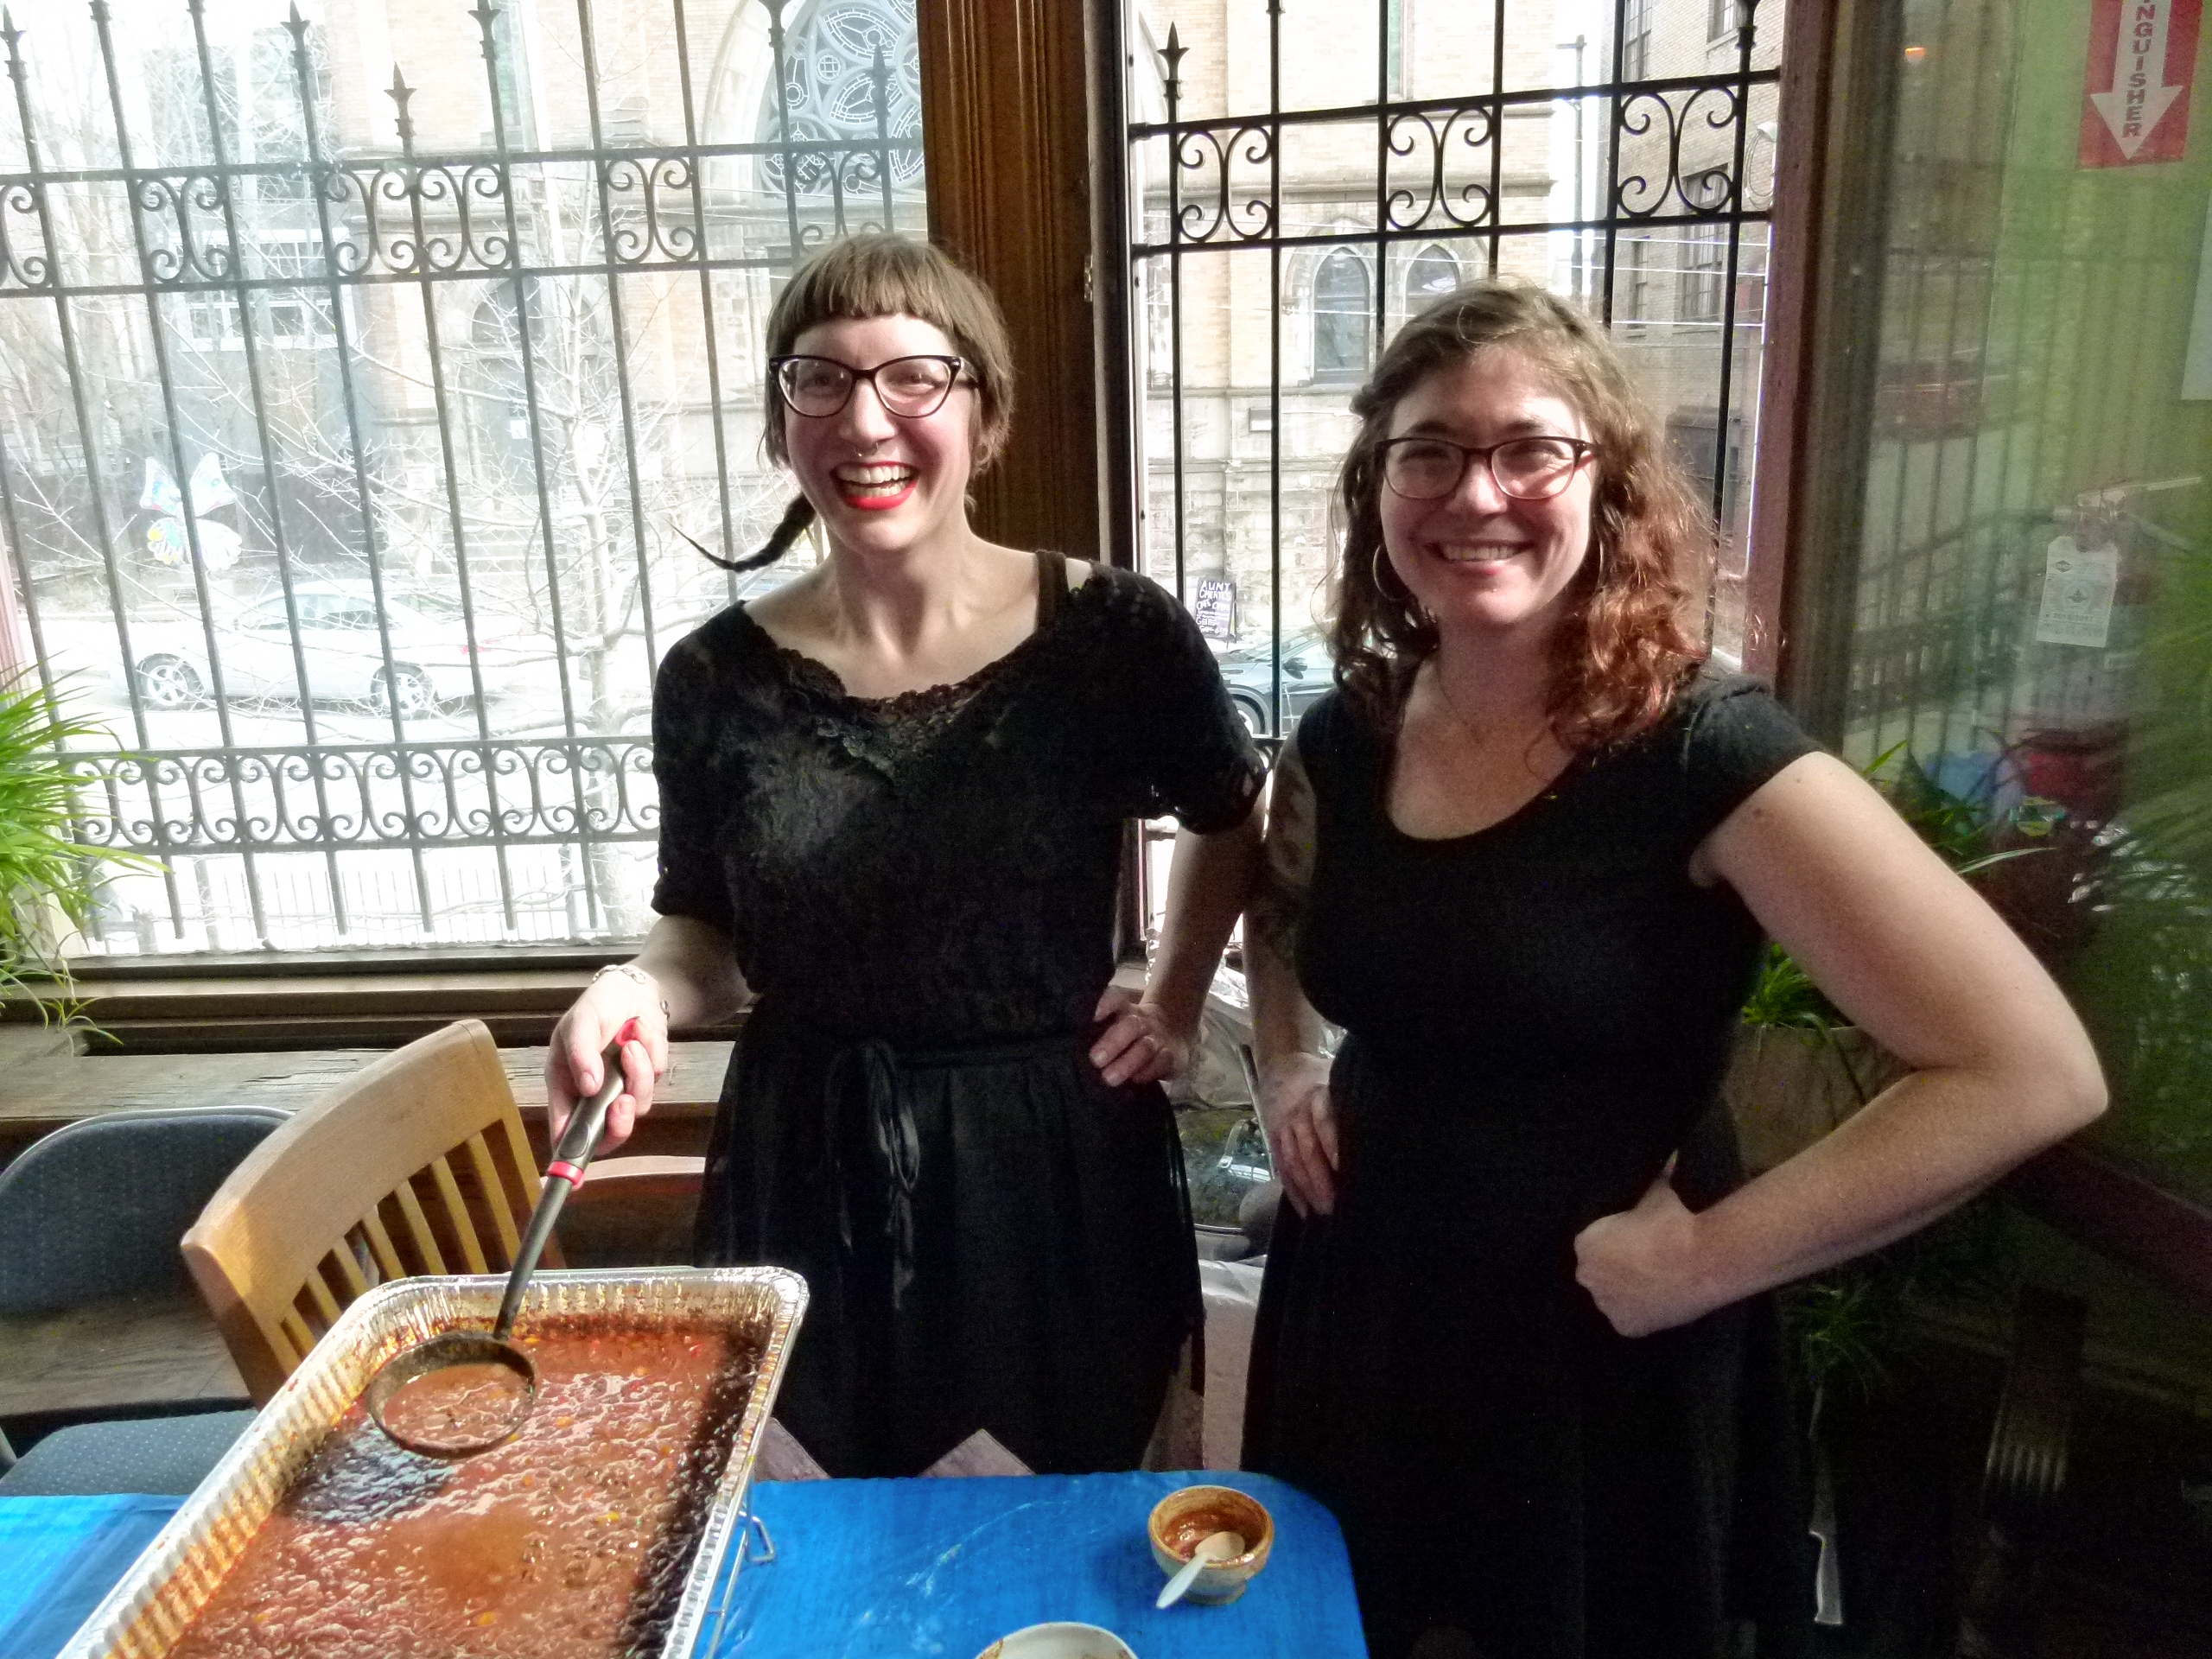 http://entertainmentcentralpittsburgh.com/story-mosaic/braddock-carnegie-chili-cook-off-serves-good-time/